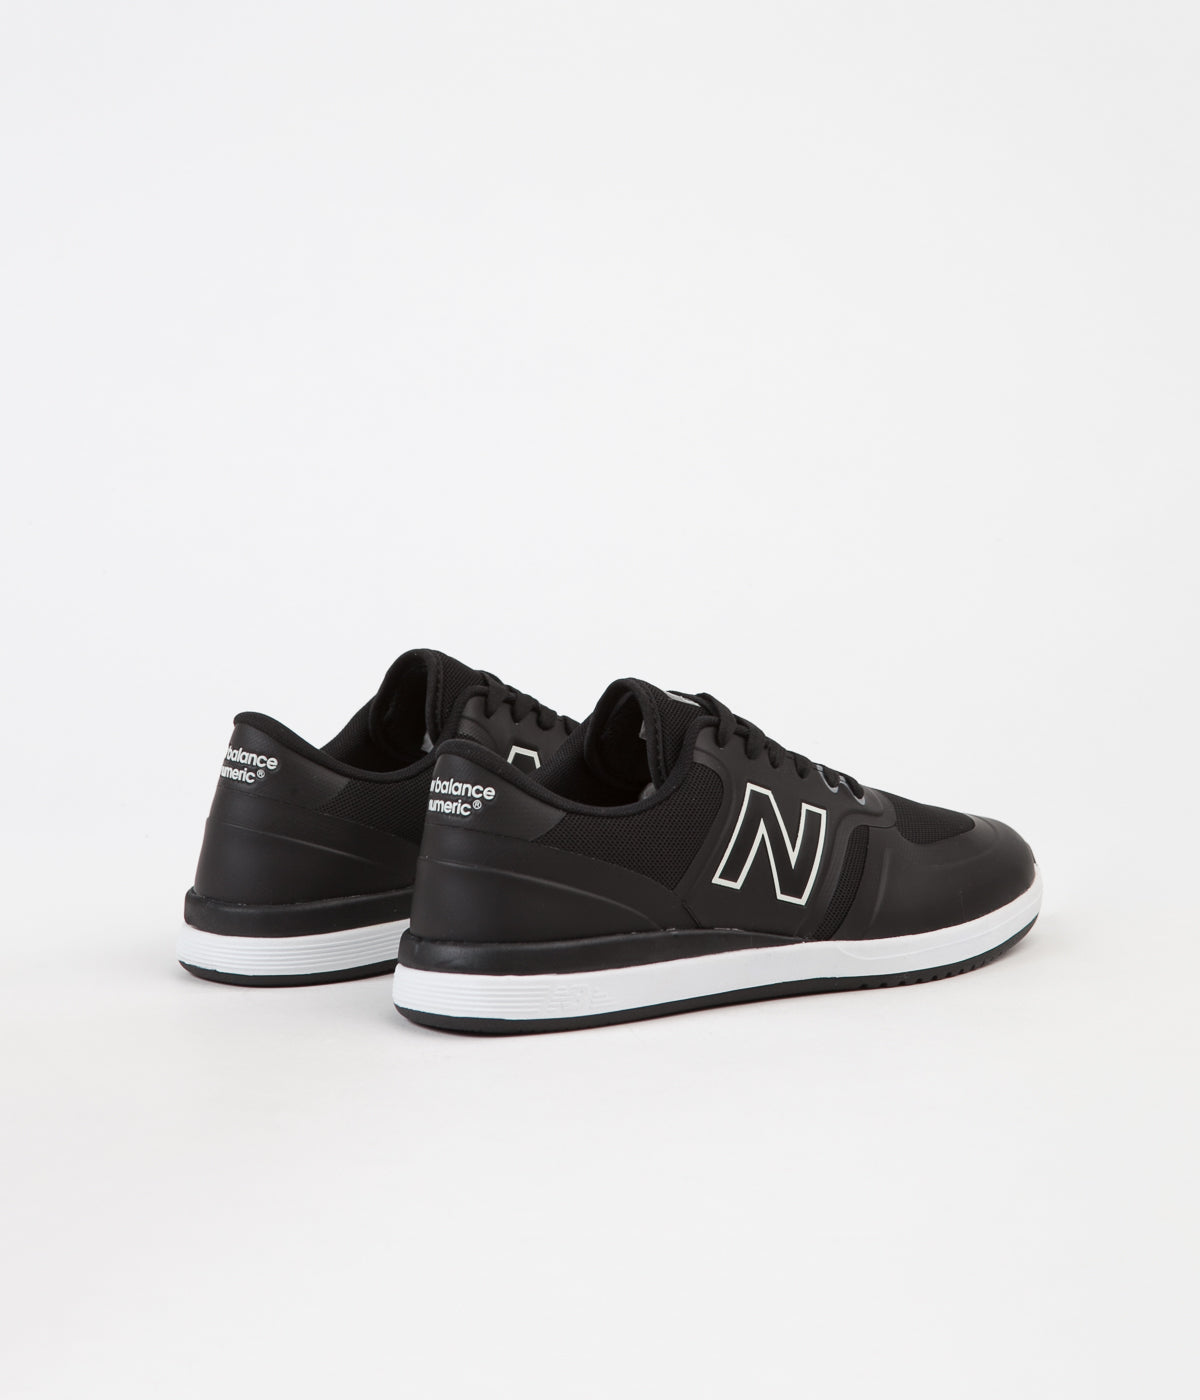 New Balance Numeric 420 Shoes - Black / White